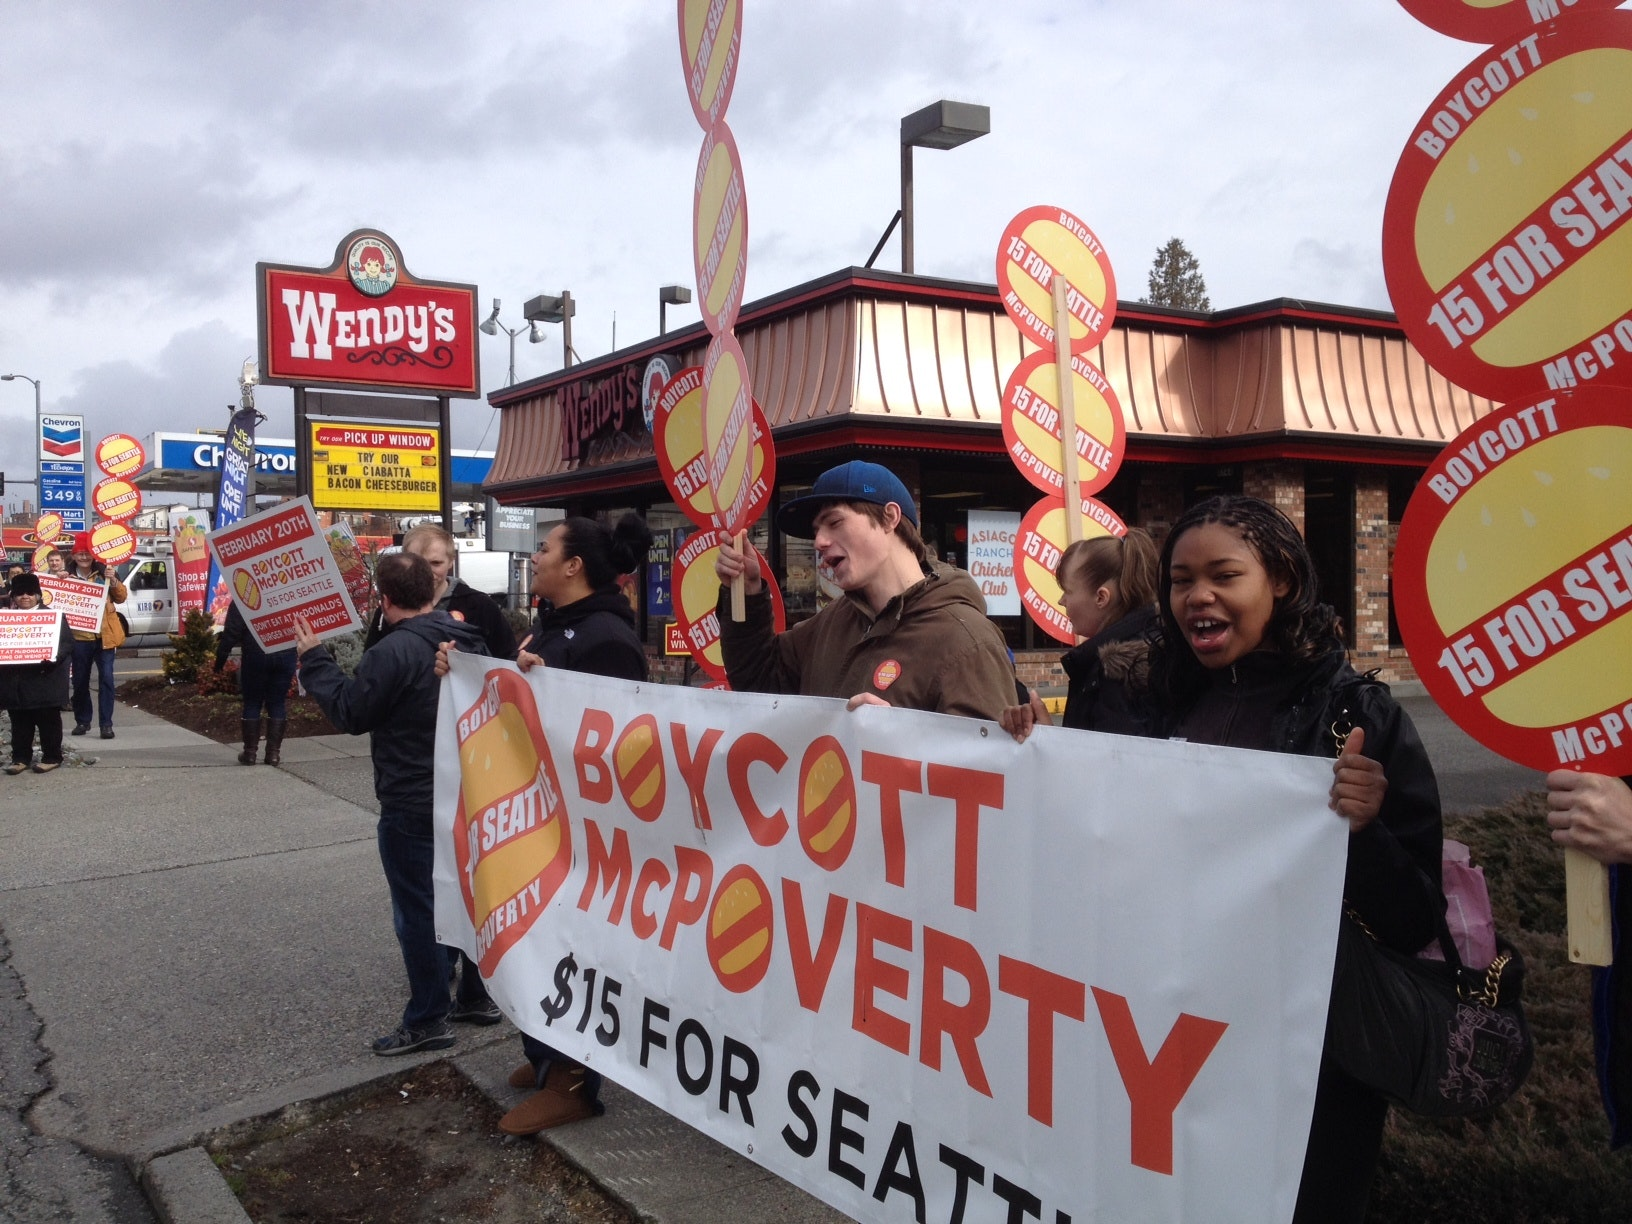 'McPoverty' Protesters Call For Fast Food Boycott In Seattle